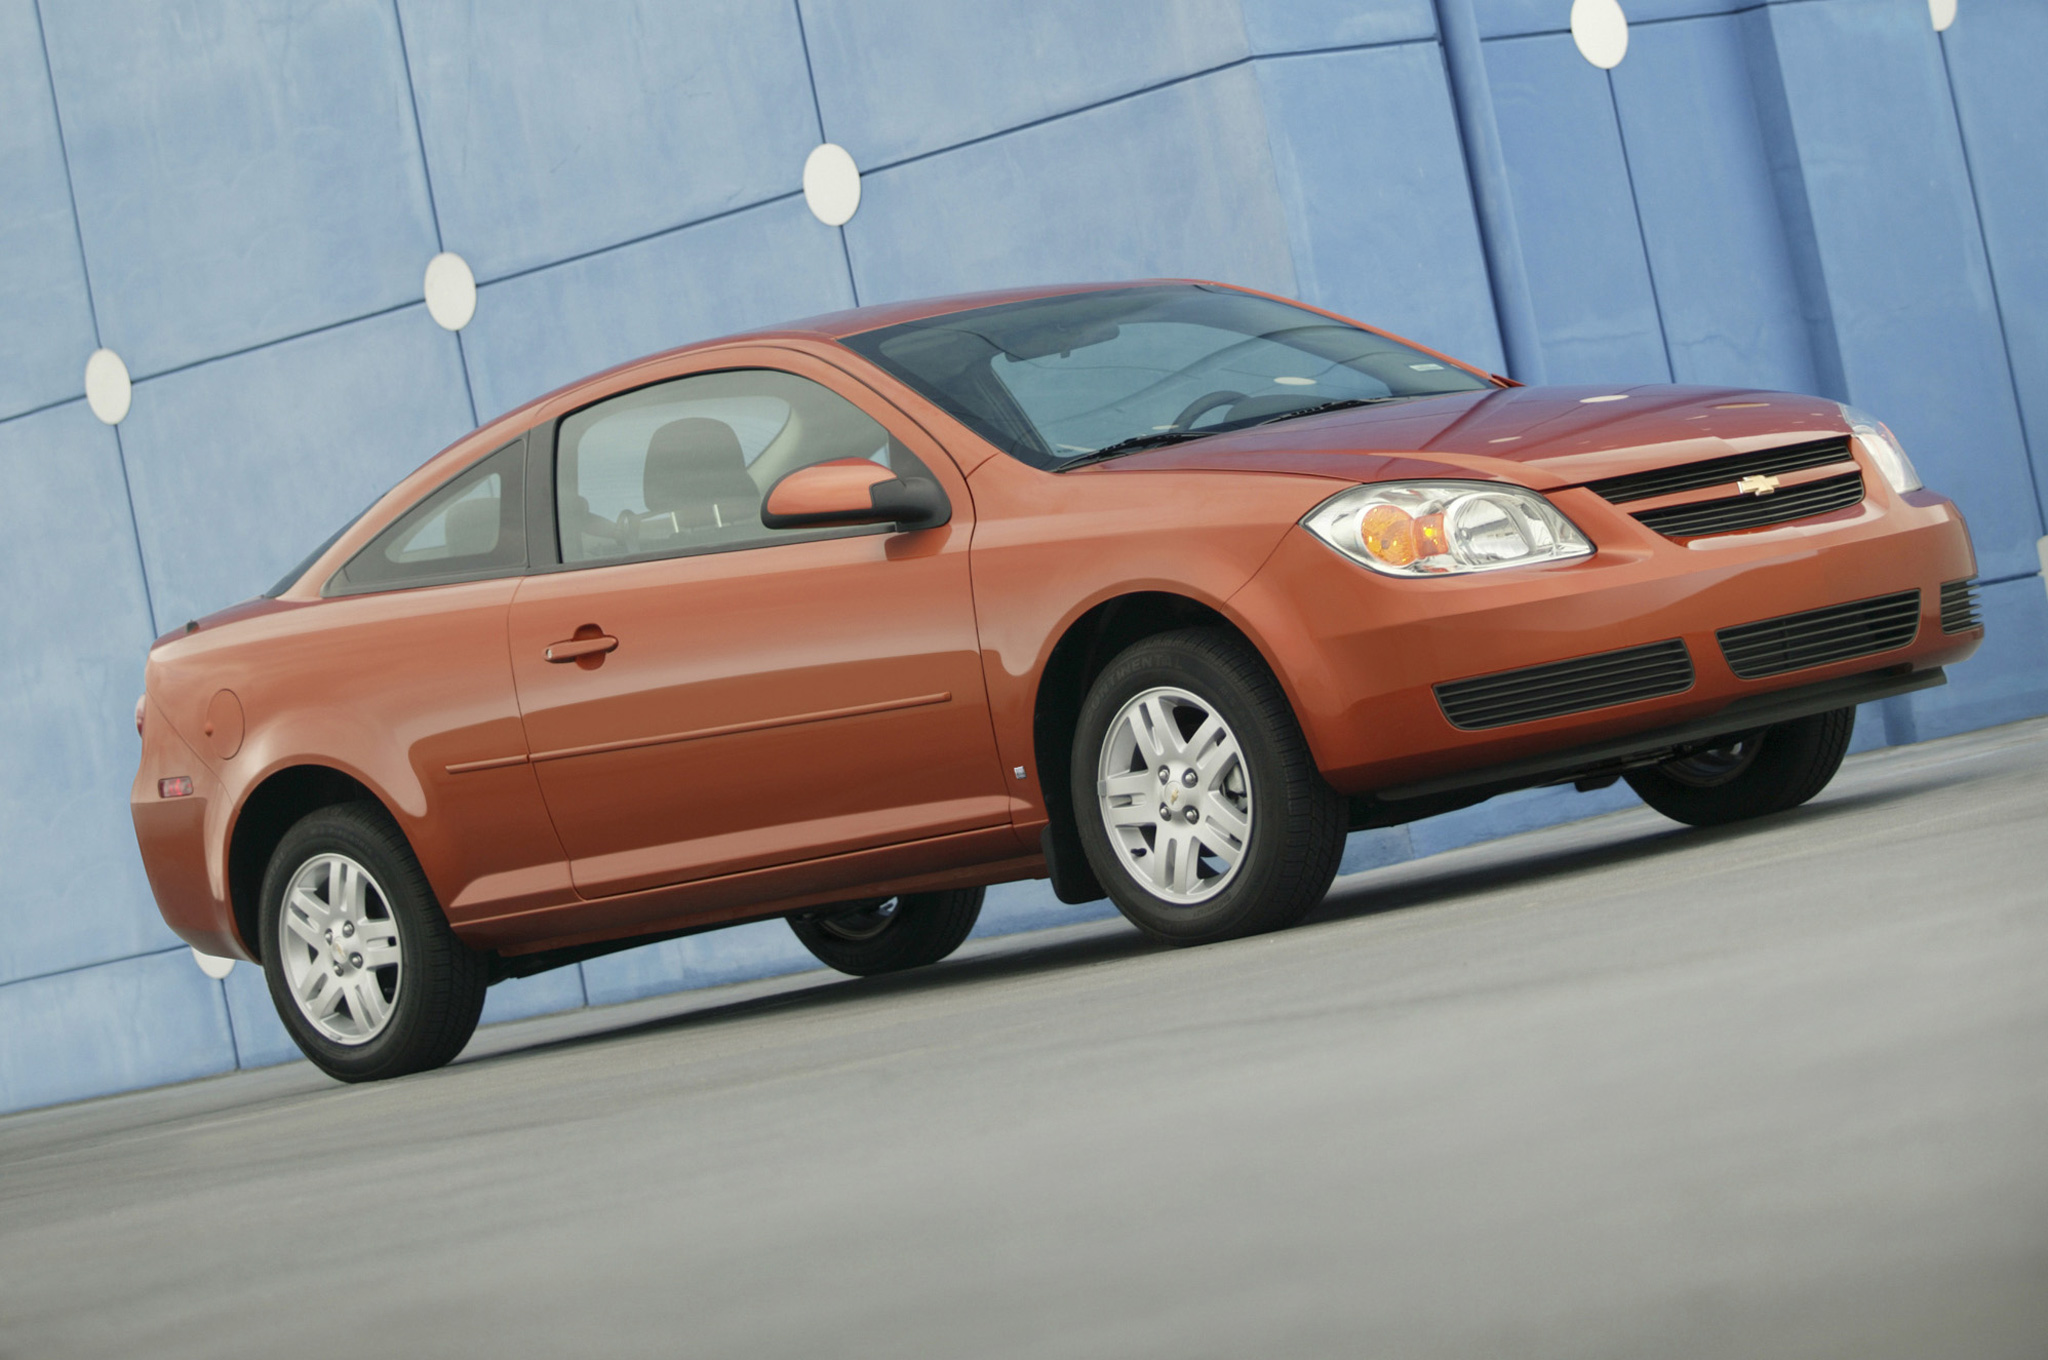 Report: NHTSA Could Have Issued GM Ignition Recall Back in 2007